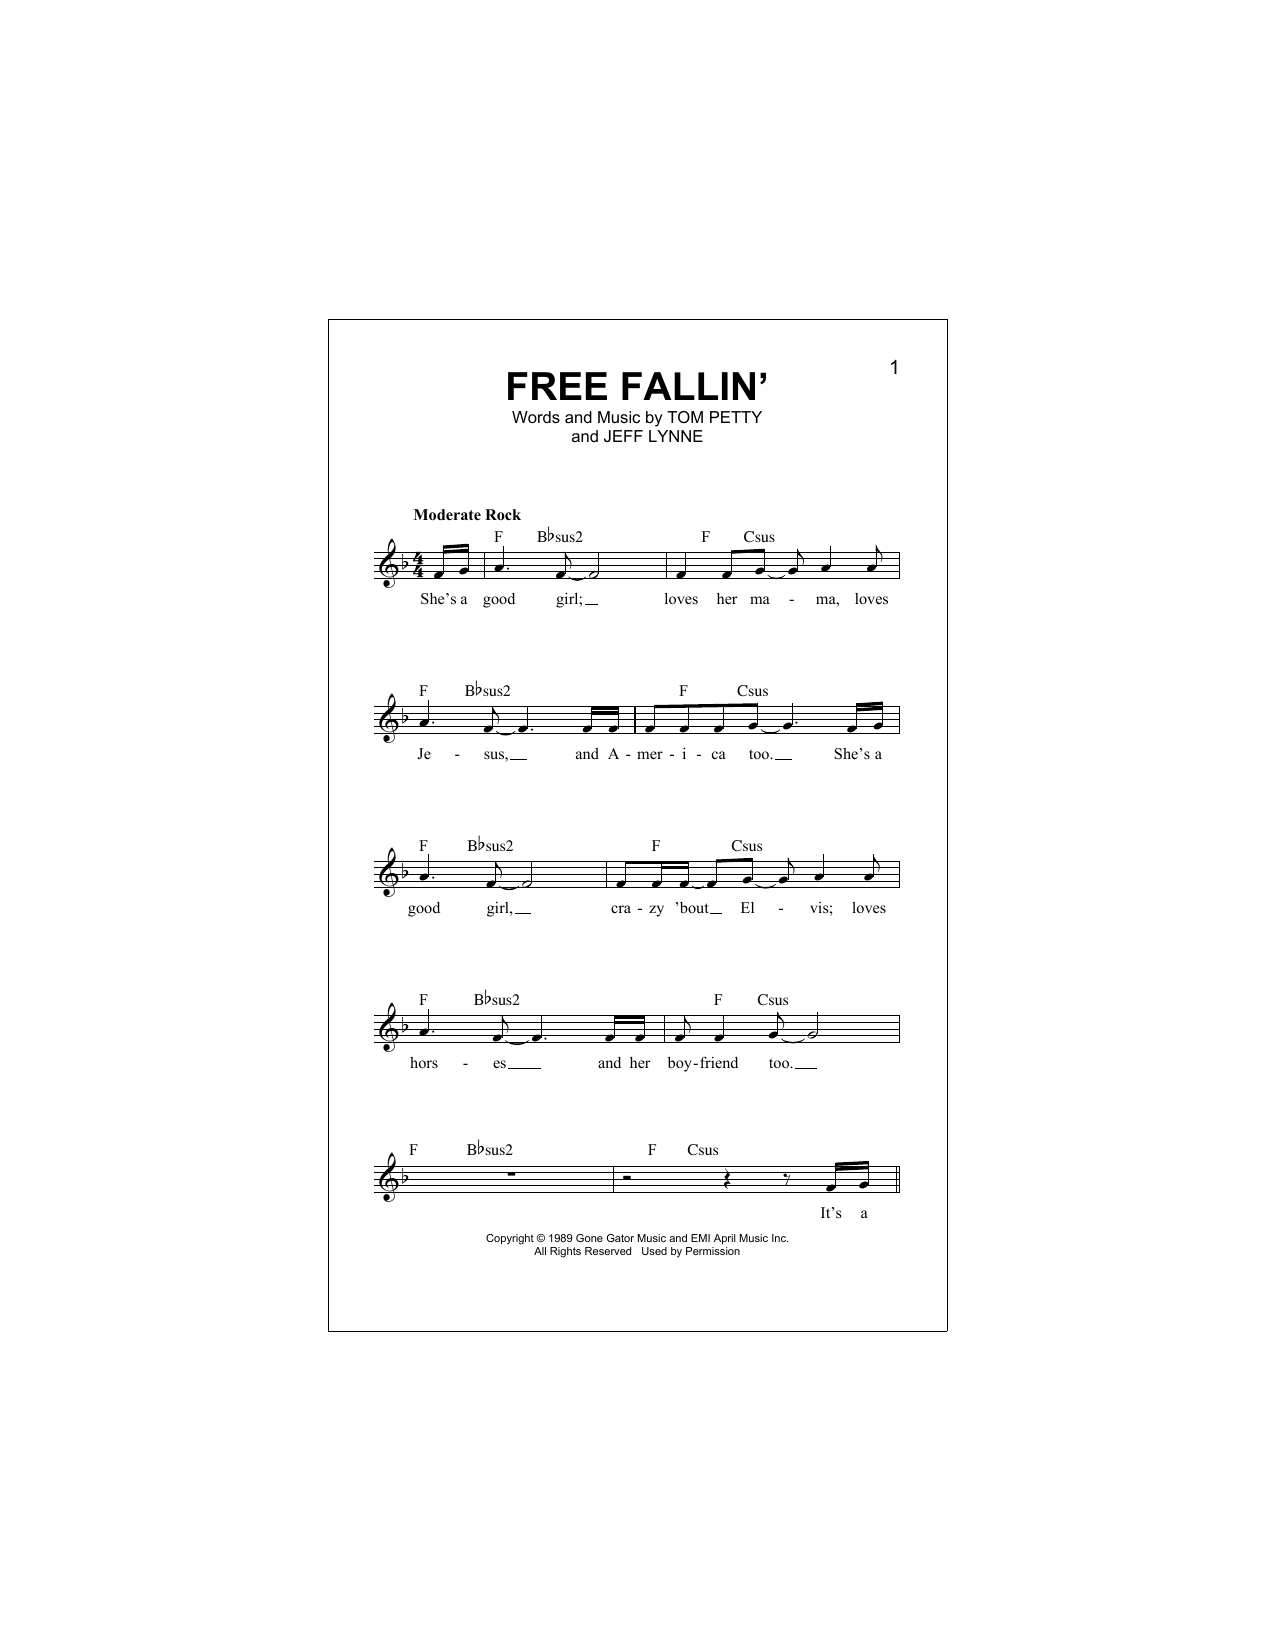 Free Fallin Sheet Music Tom Petty Melody Line Lyrics Chords